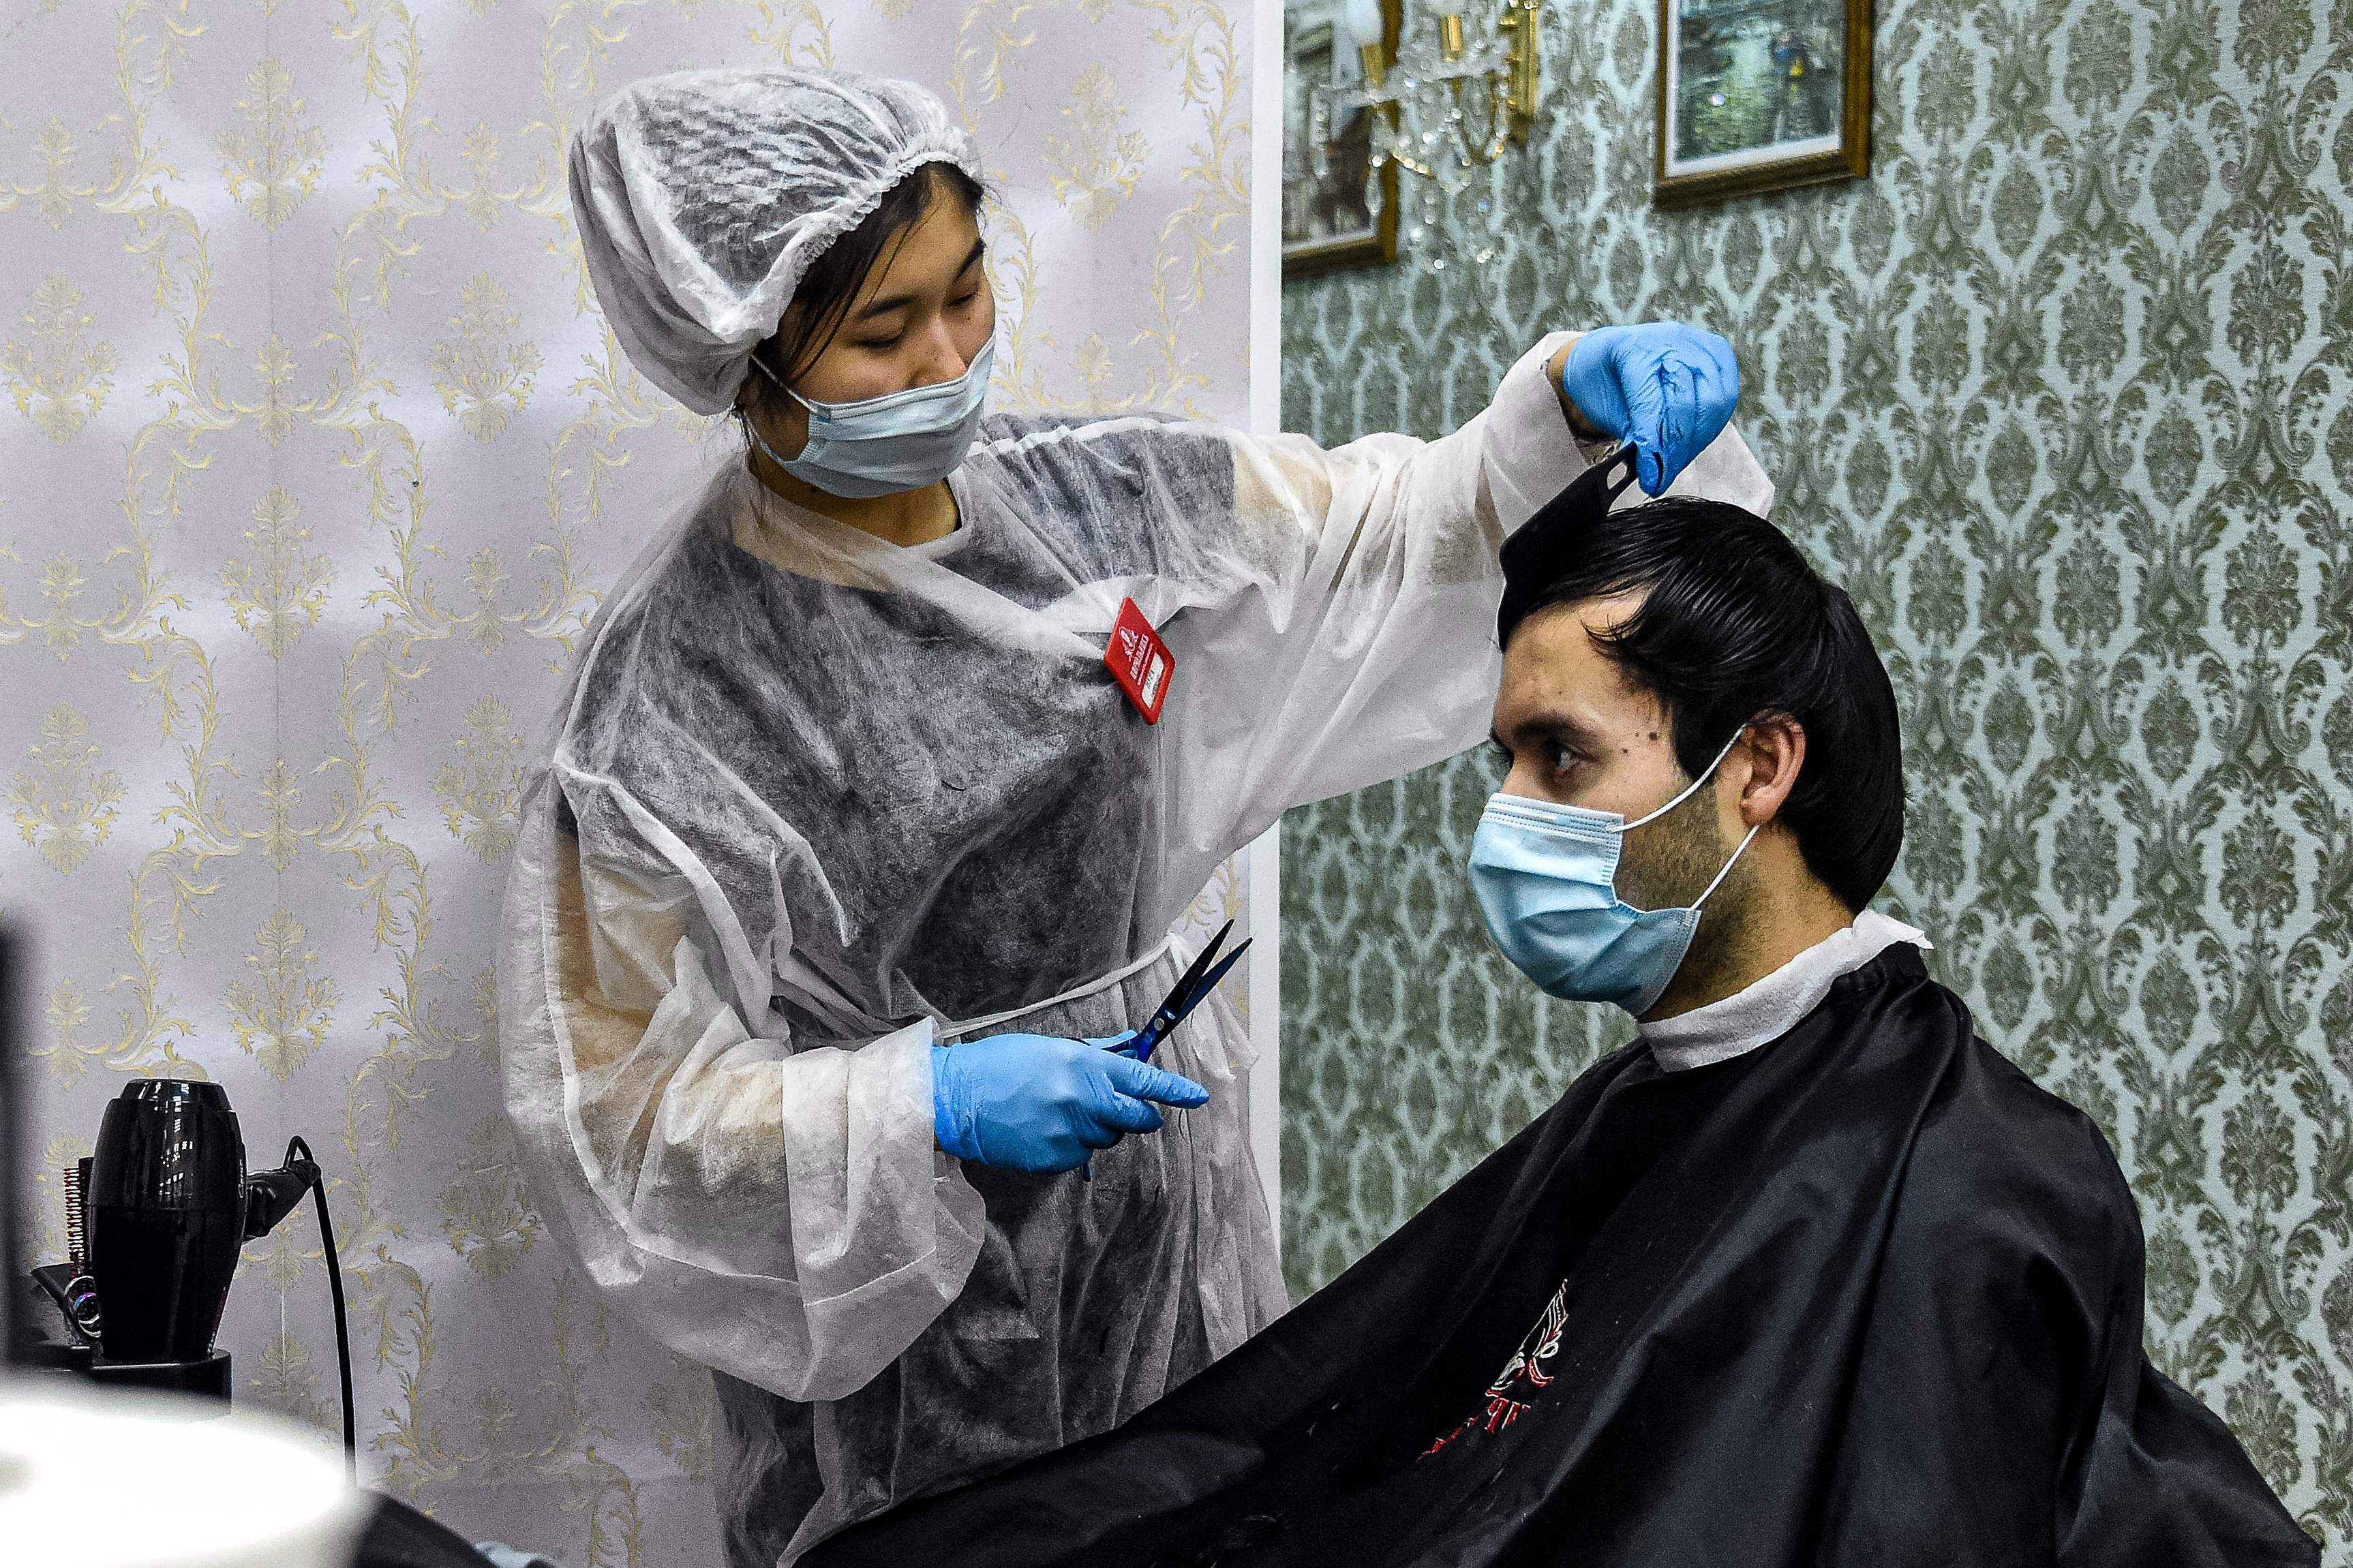 Barber shops in the UK could reopen from July 4